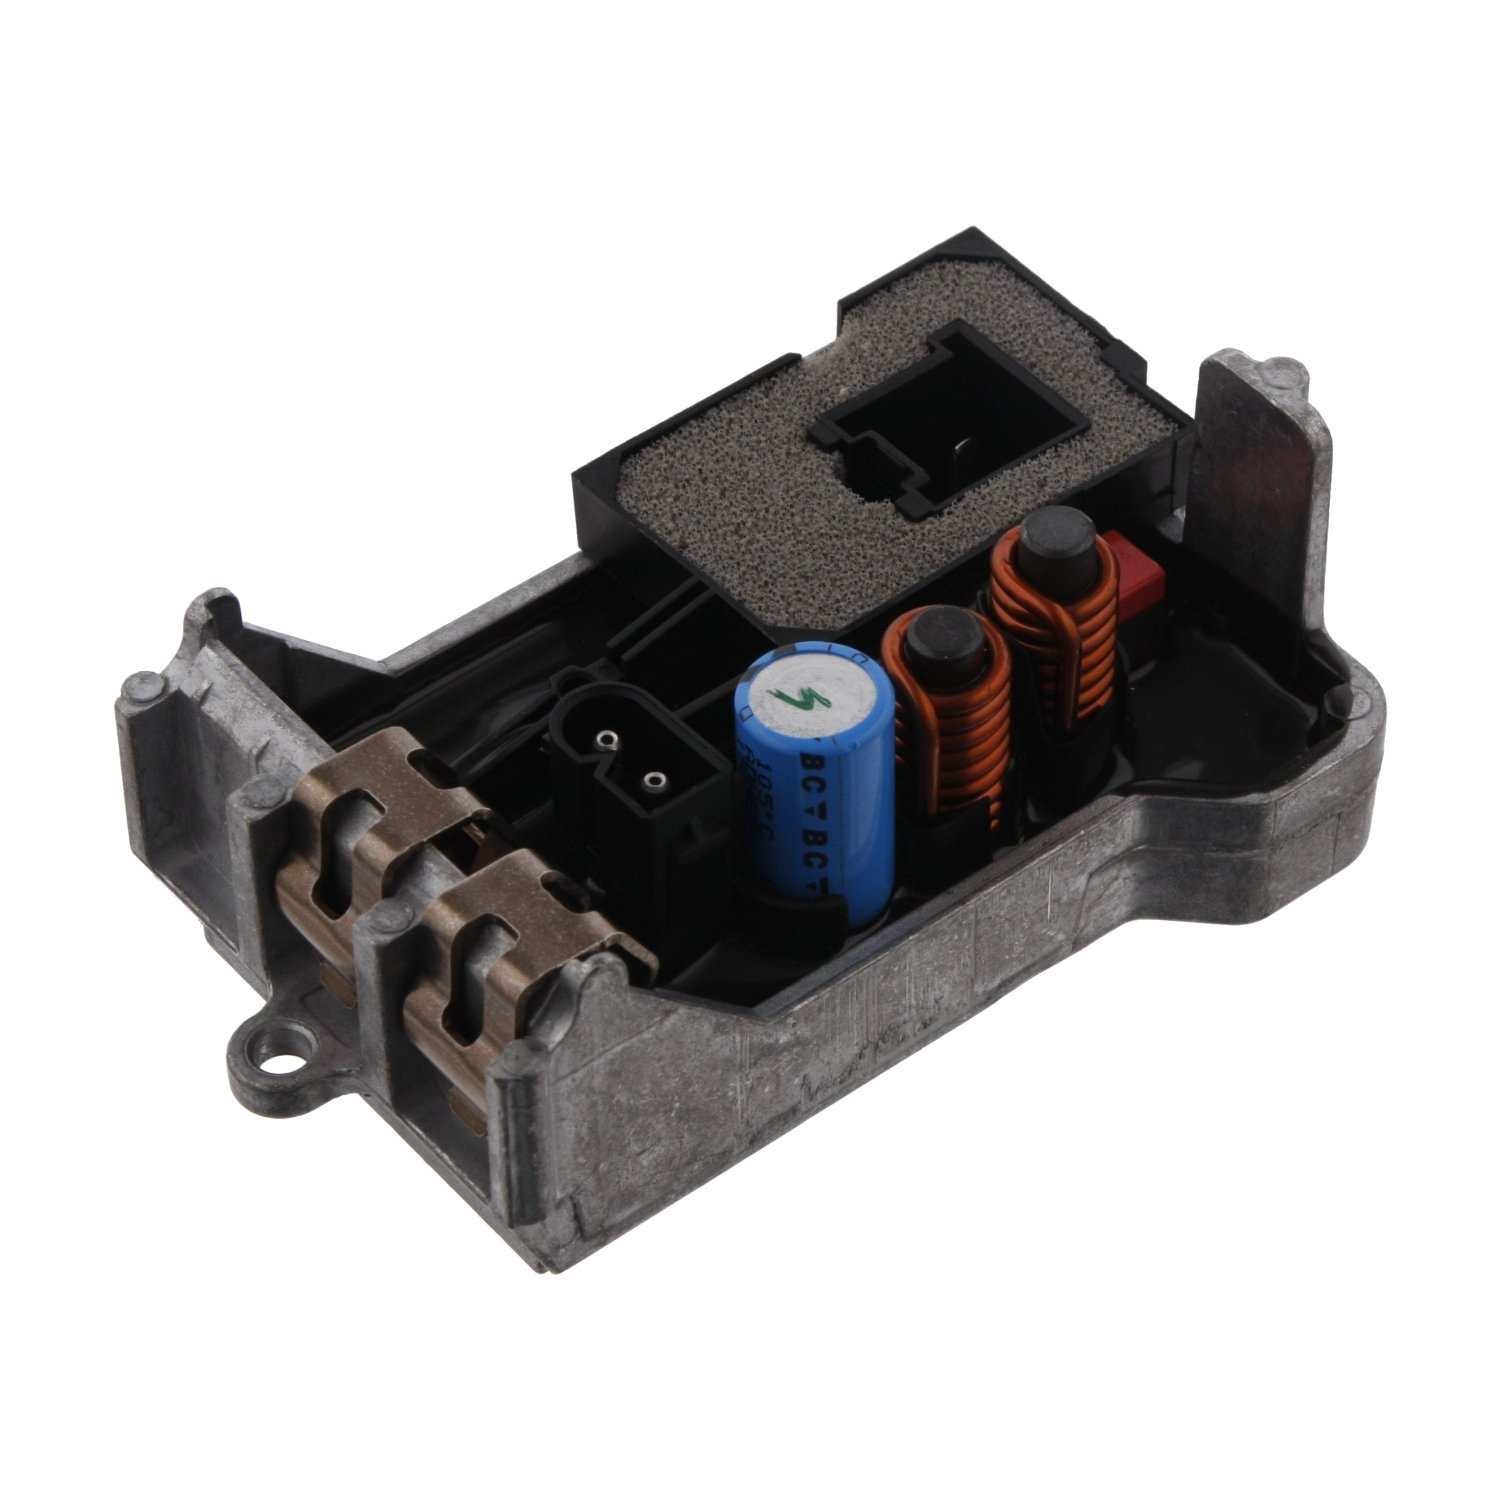 febi bilstein 31335 Control Device for heater pack of one